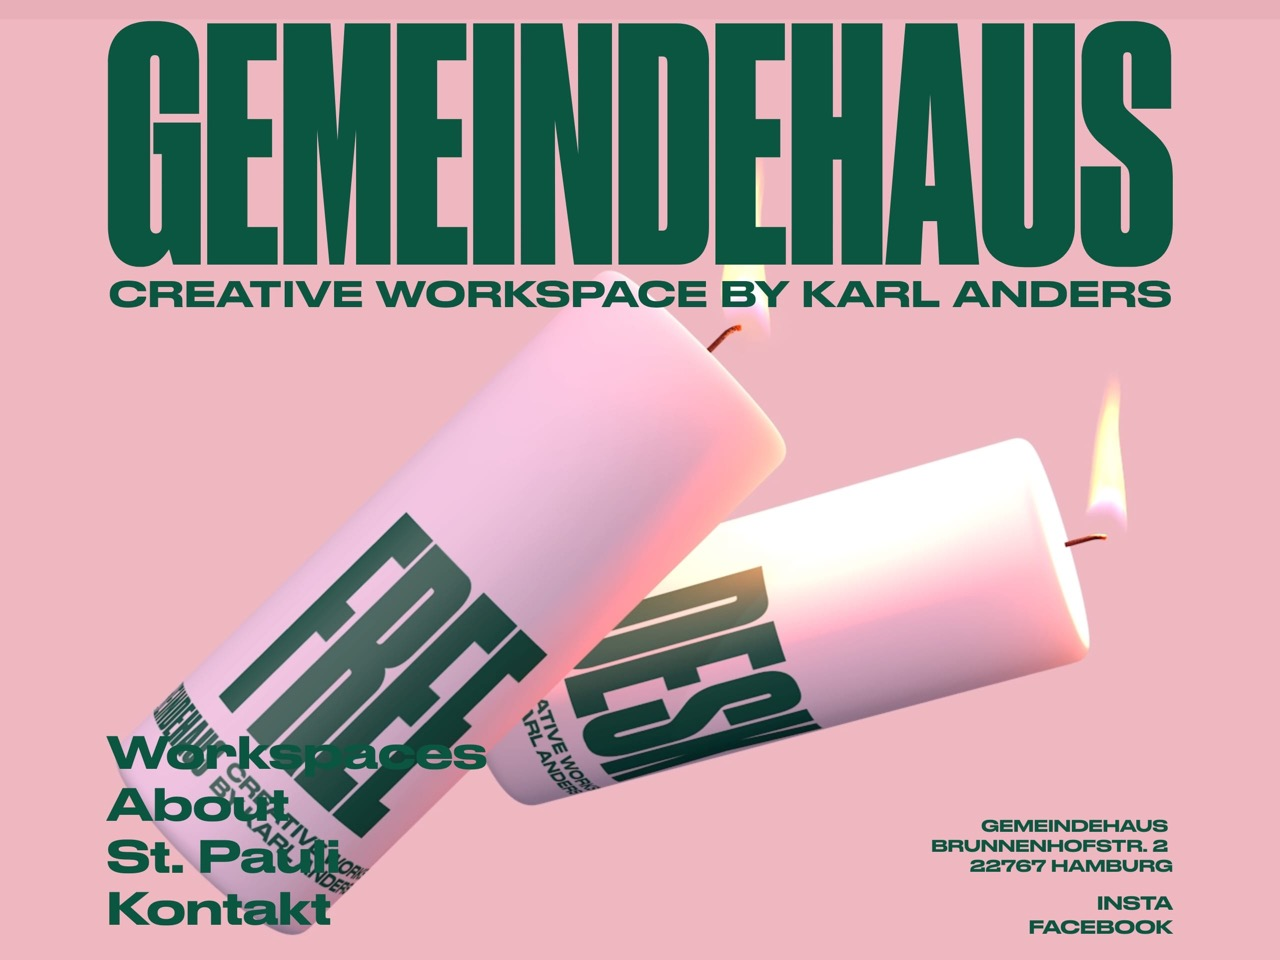 Gemeindehaus   creative workspace   home